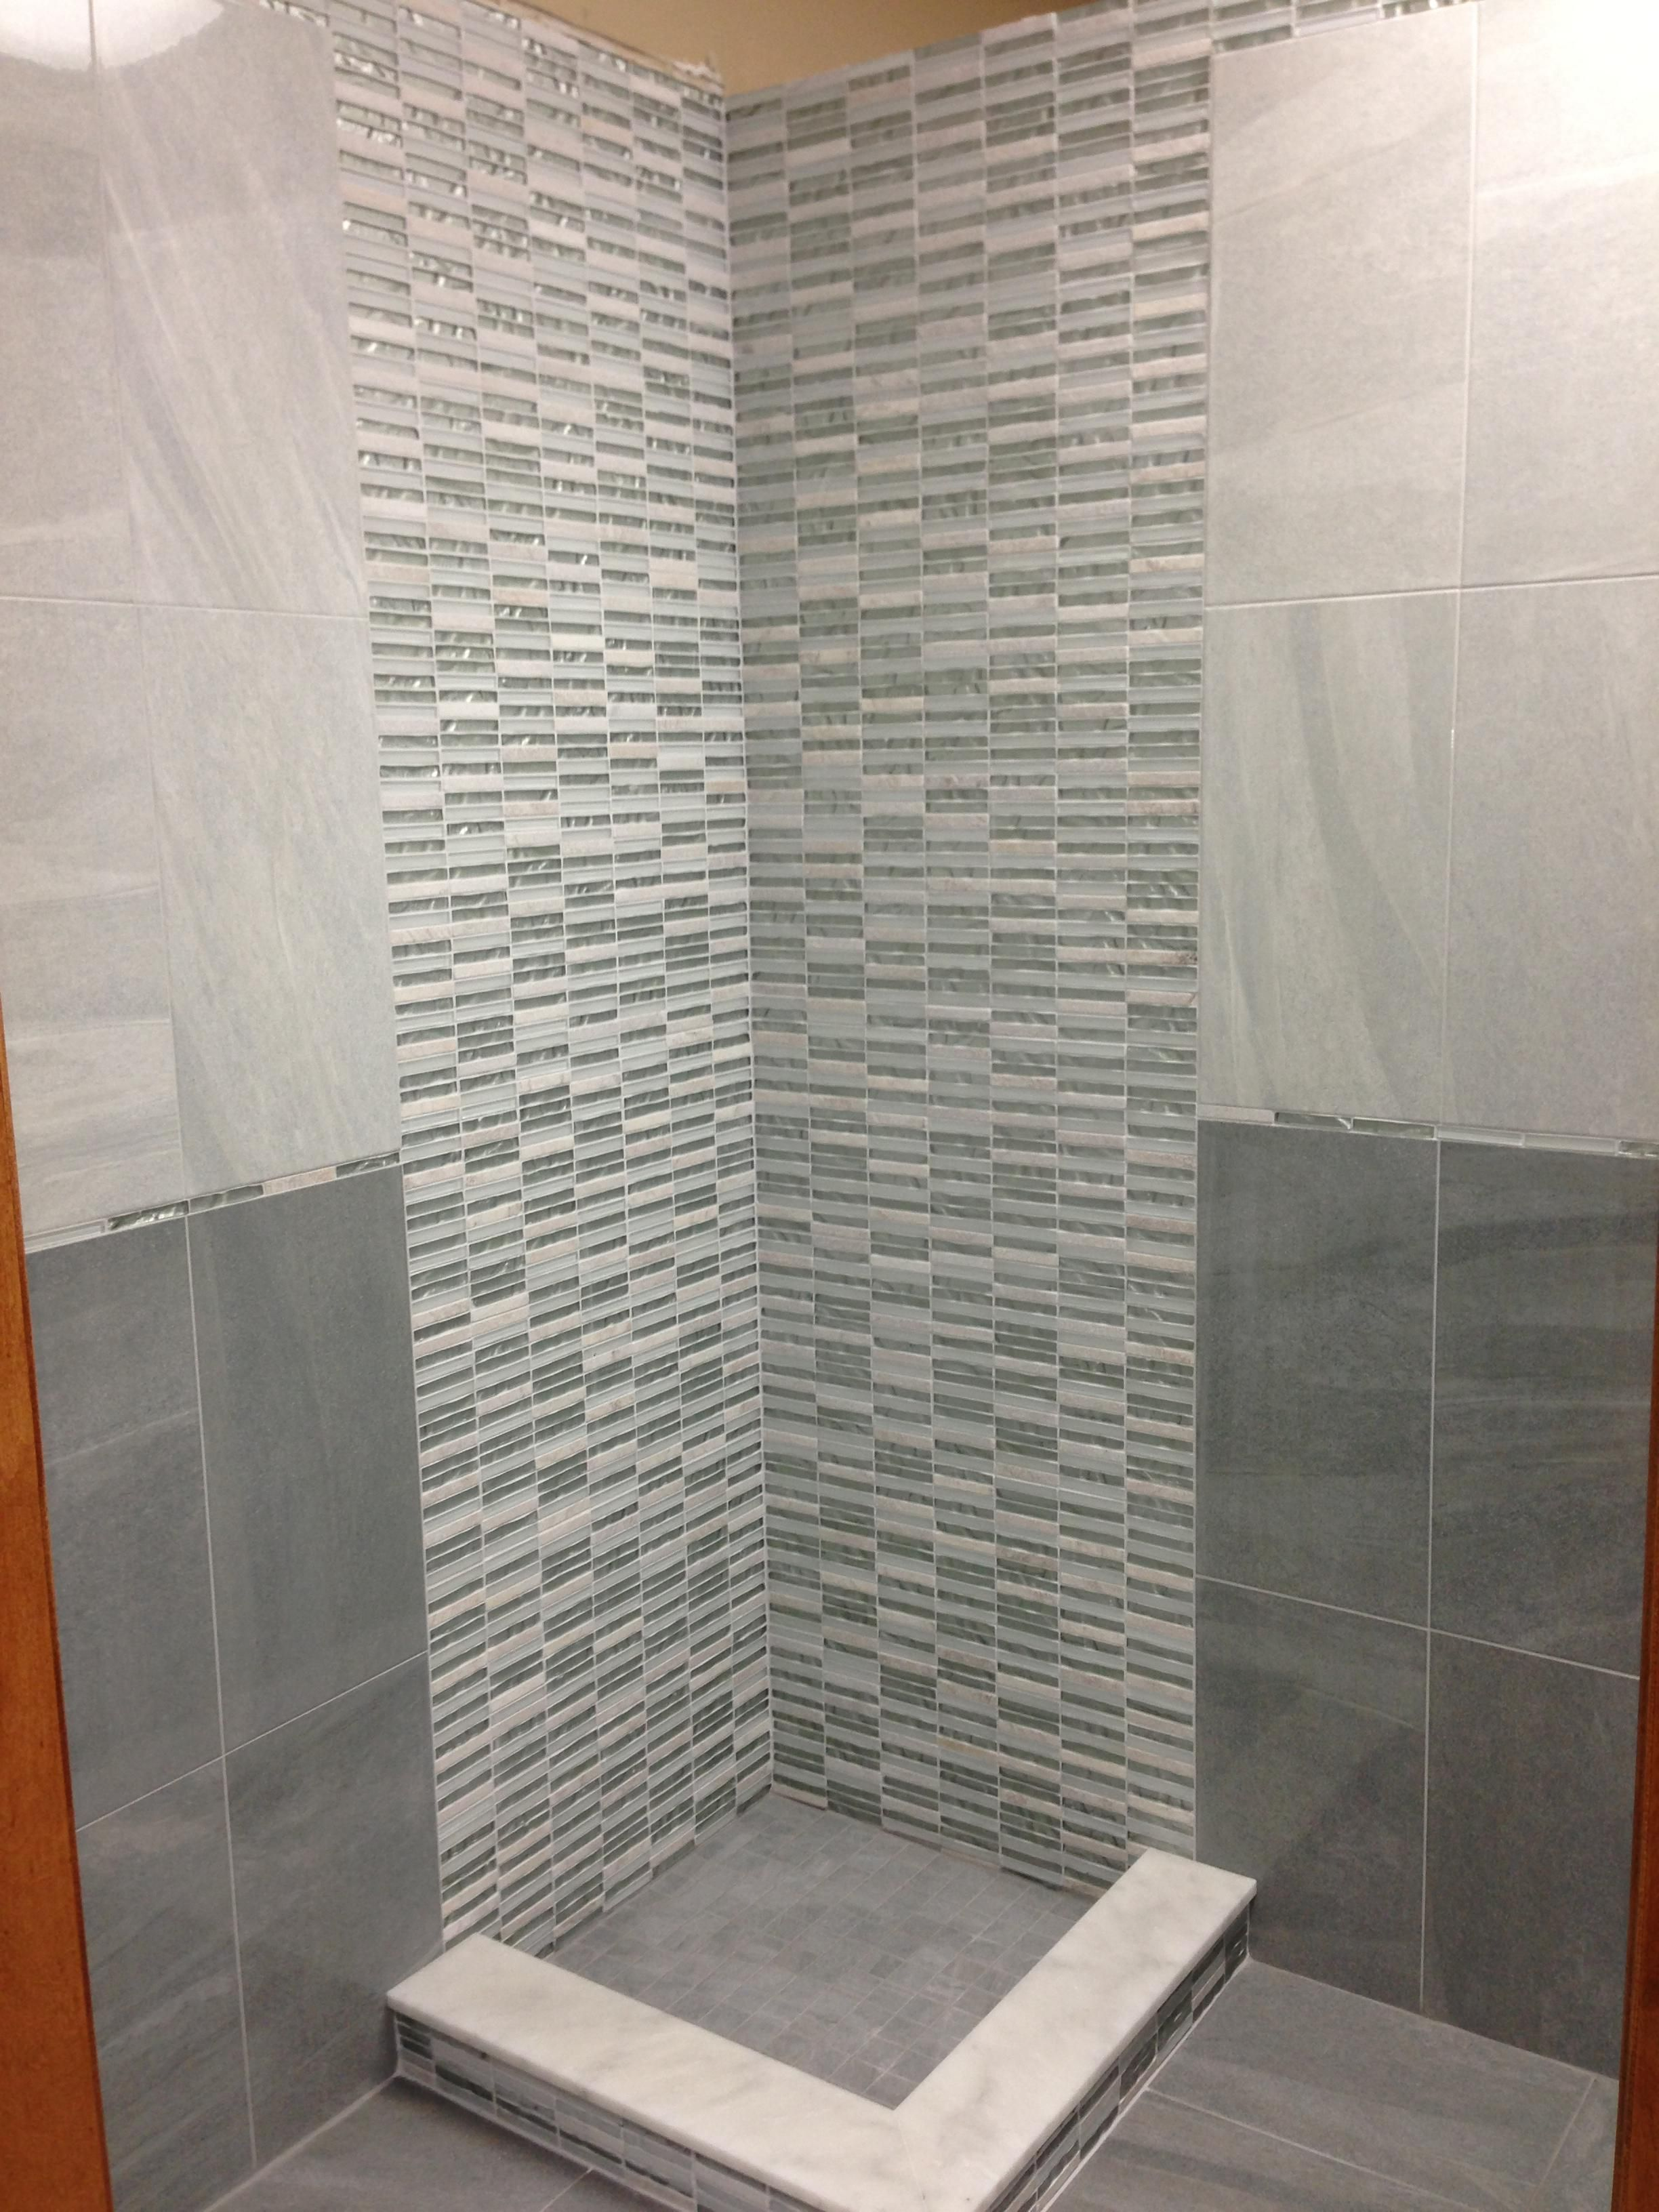 cool bathroom tile idea with light 12 x 24 tiles on top of ...